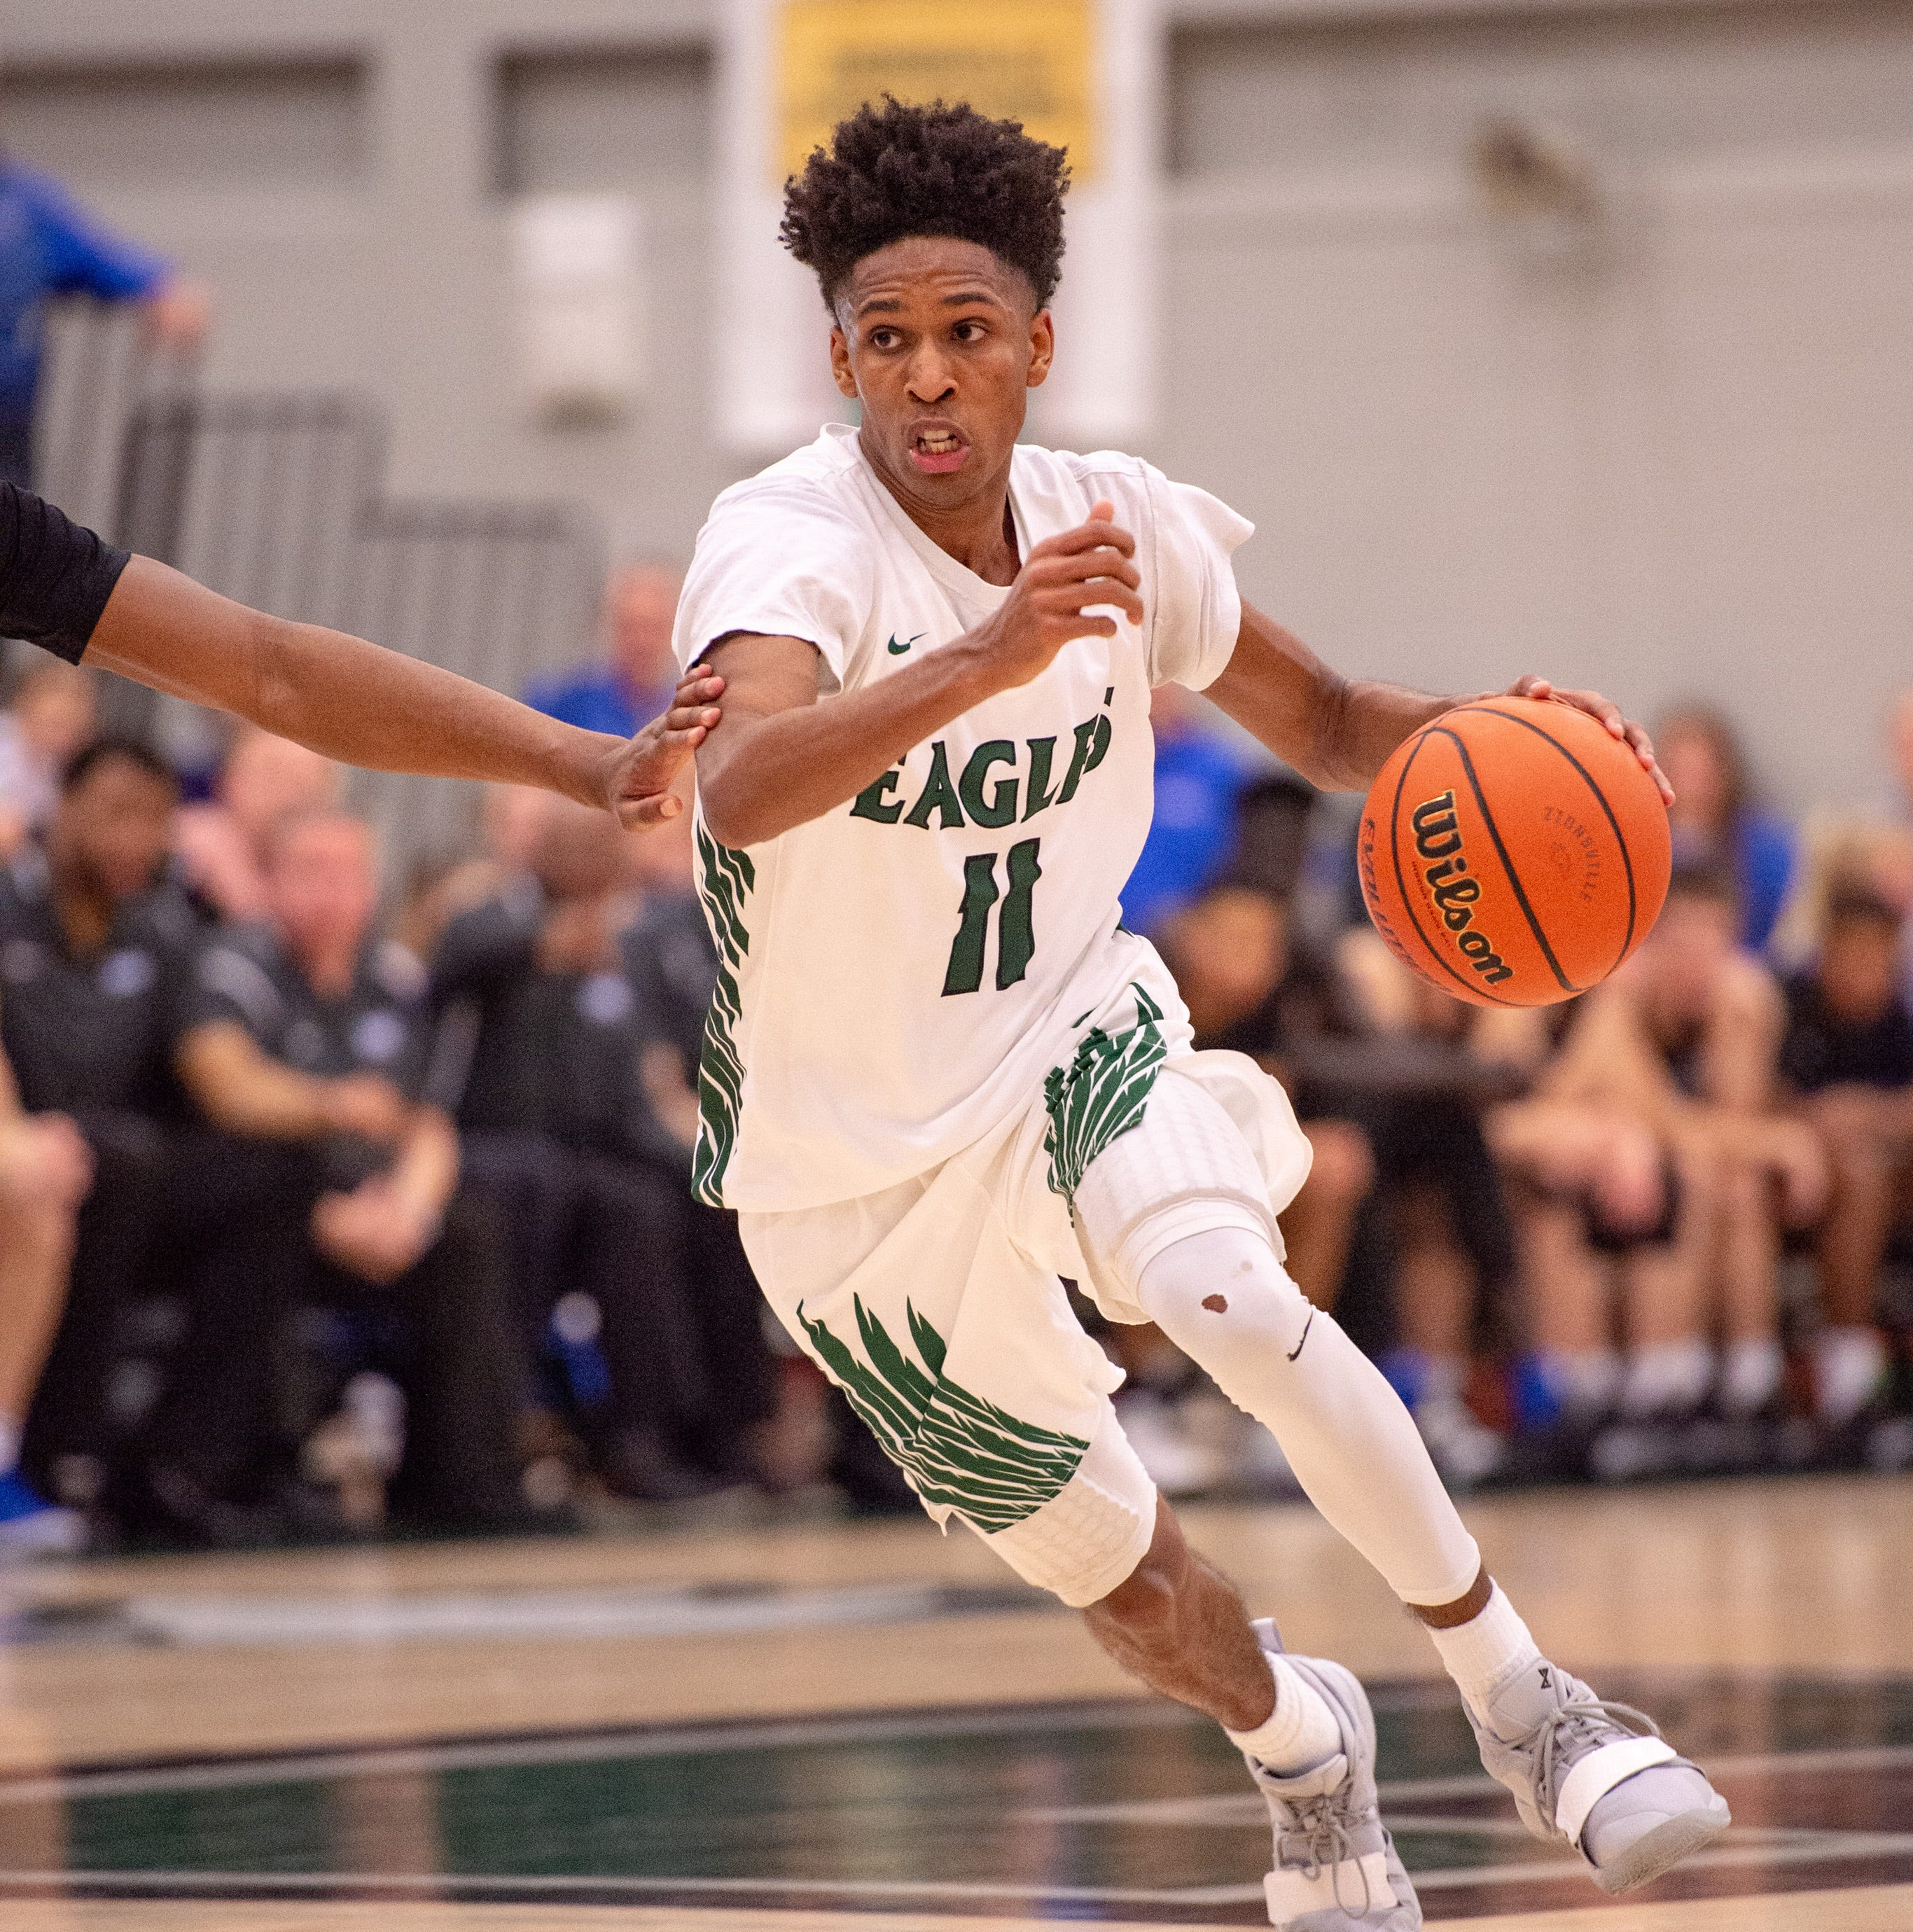 Purdue recruit Isaiah Thompson led the Eagles past the Royals on Friday.